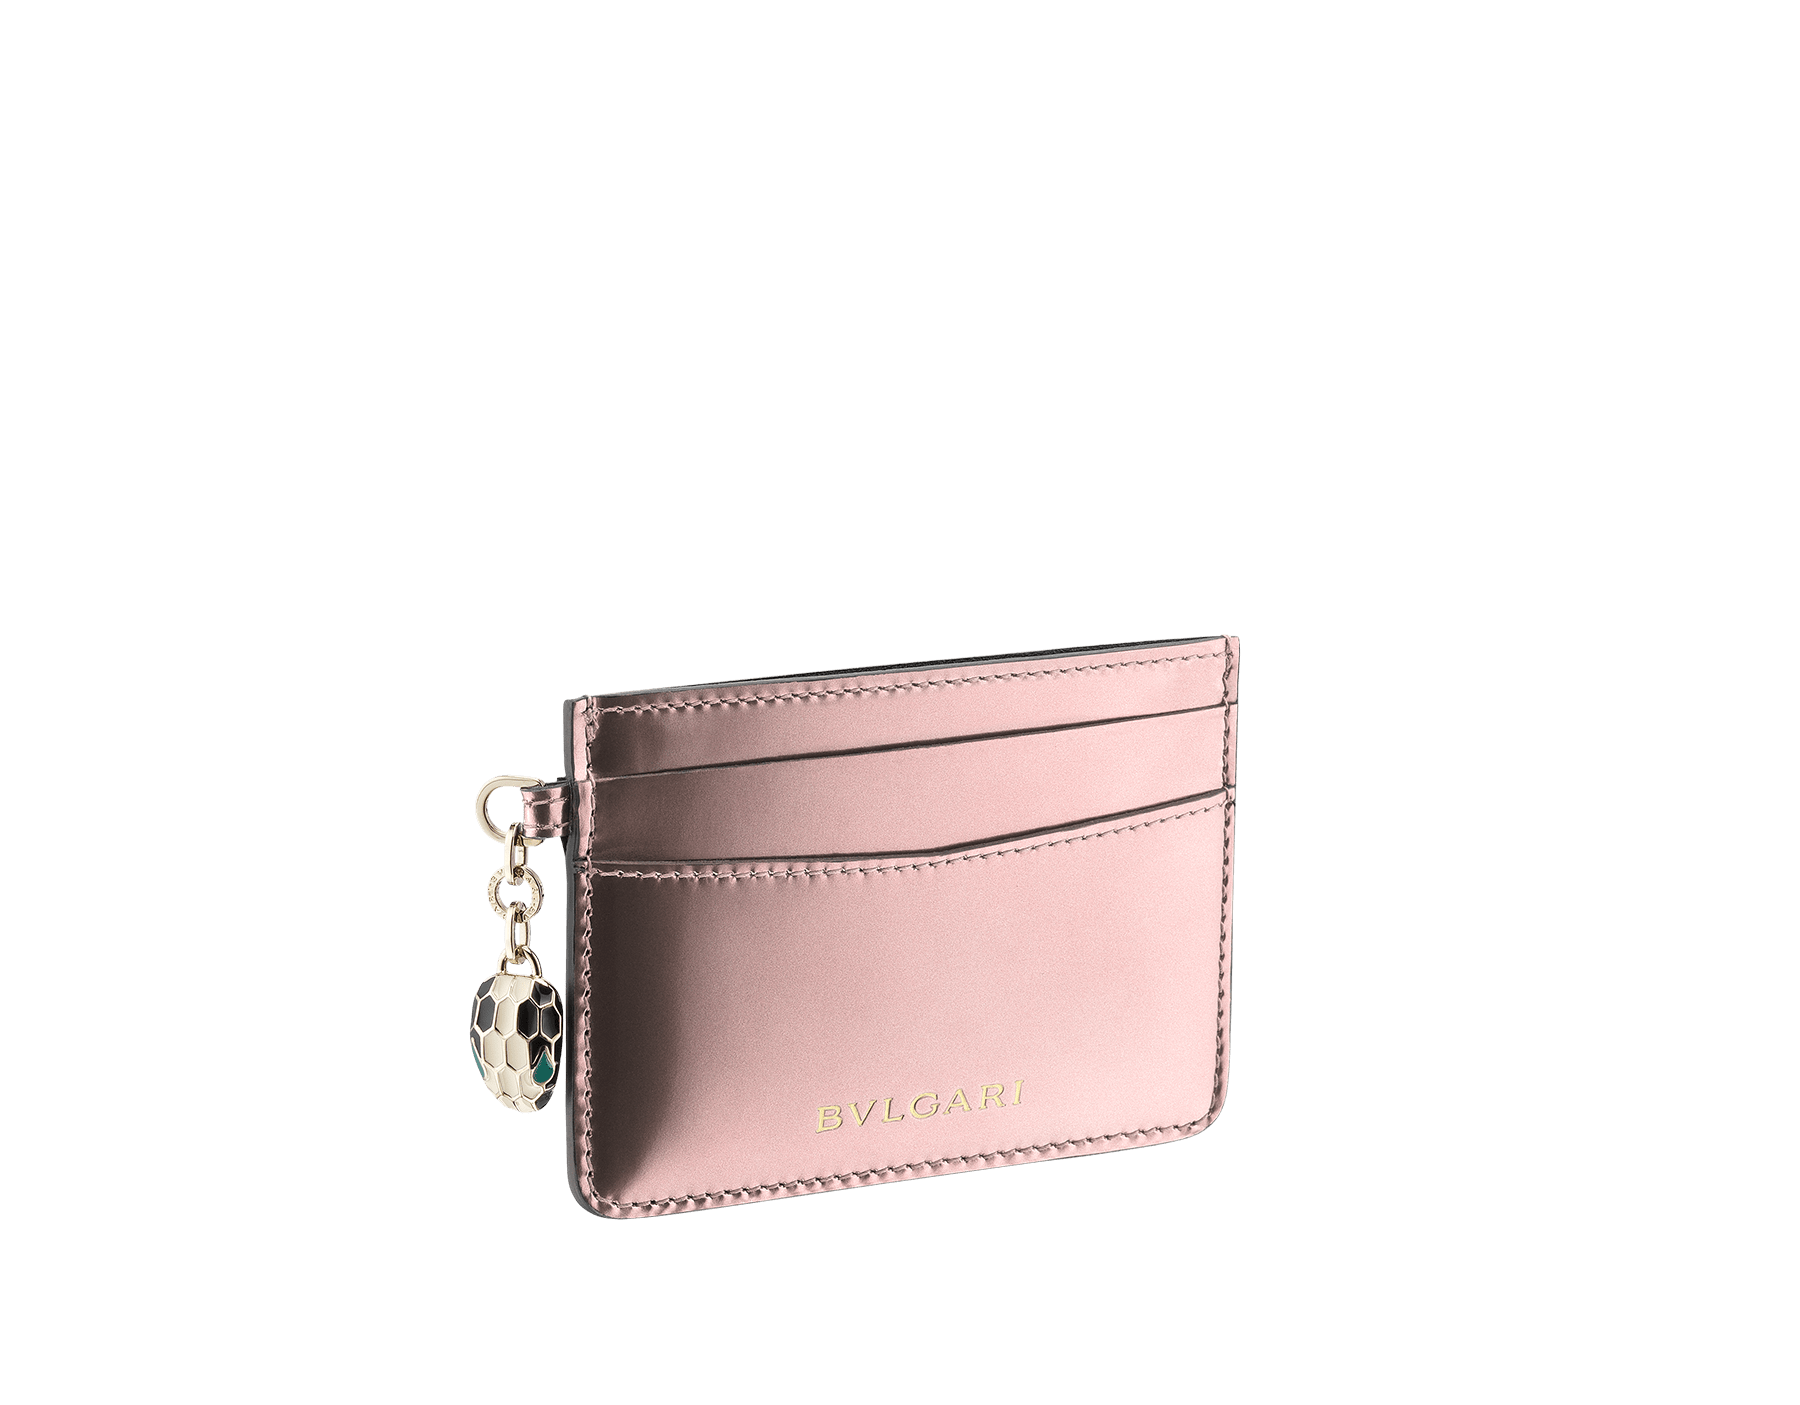 Credit card holder in forest emerald brushed metallic calf leather and black calf leather lining. Serpenti charm in black and white enamel with green malachite enamel eyes and Bulgari logo. SEA-CC-HOLDER-BMCL image 1